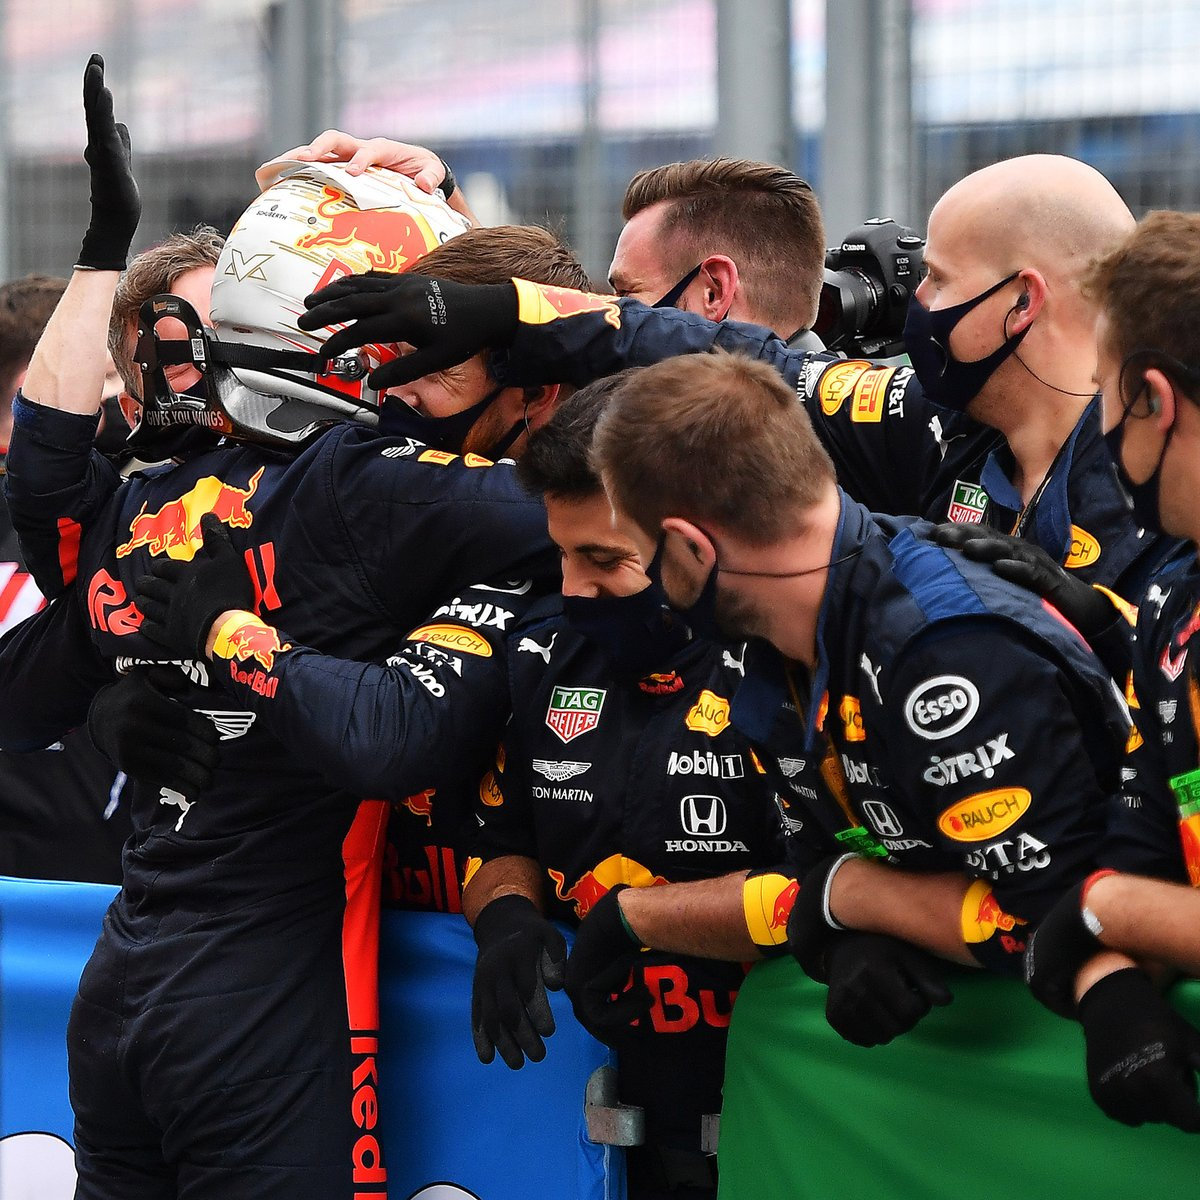 First of all a big thanks to my mechanics for doing an incredible job fixing the car in record time 💪 I'm very happy finishing 2nd! #KeepPushing 🇭🇺 #HungarianGP https://t.co/FKSEEfAyNA